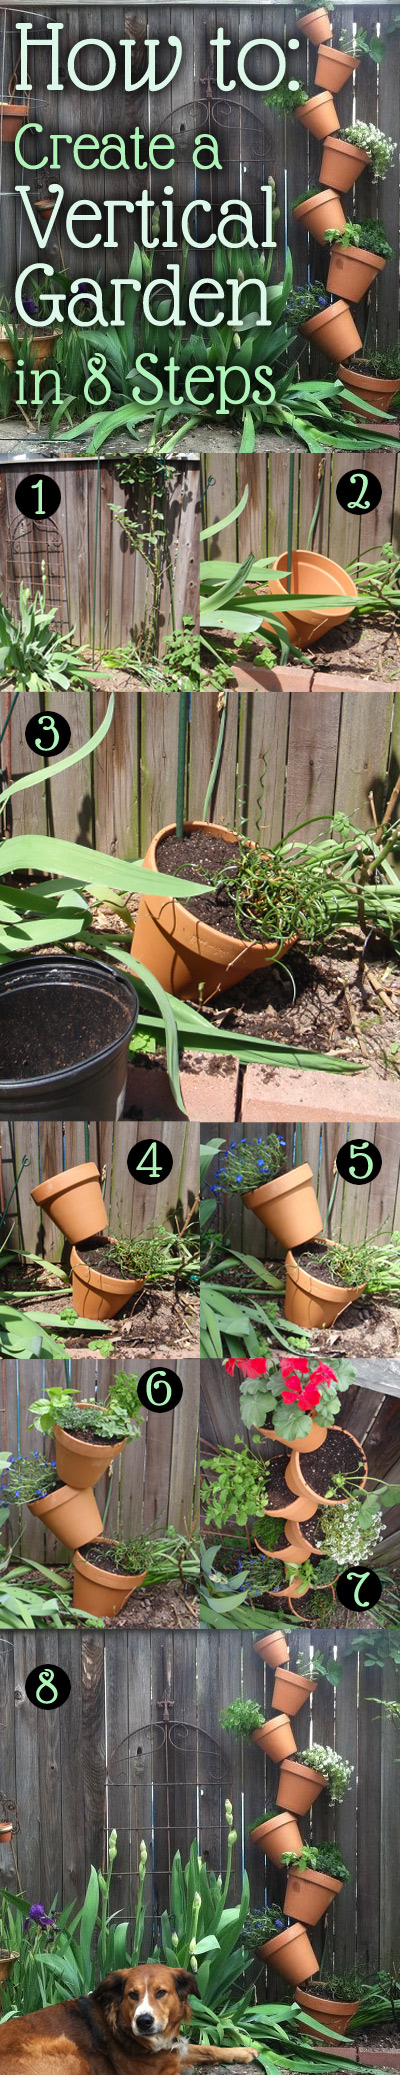 A step-by-step diagram for creating your own vertical garden.